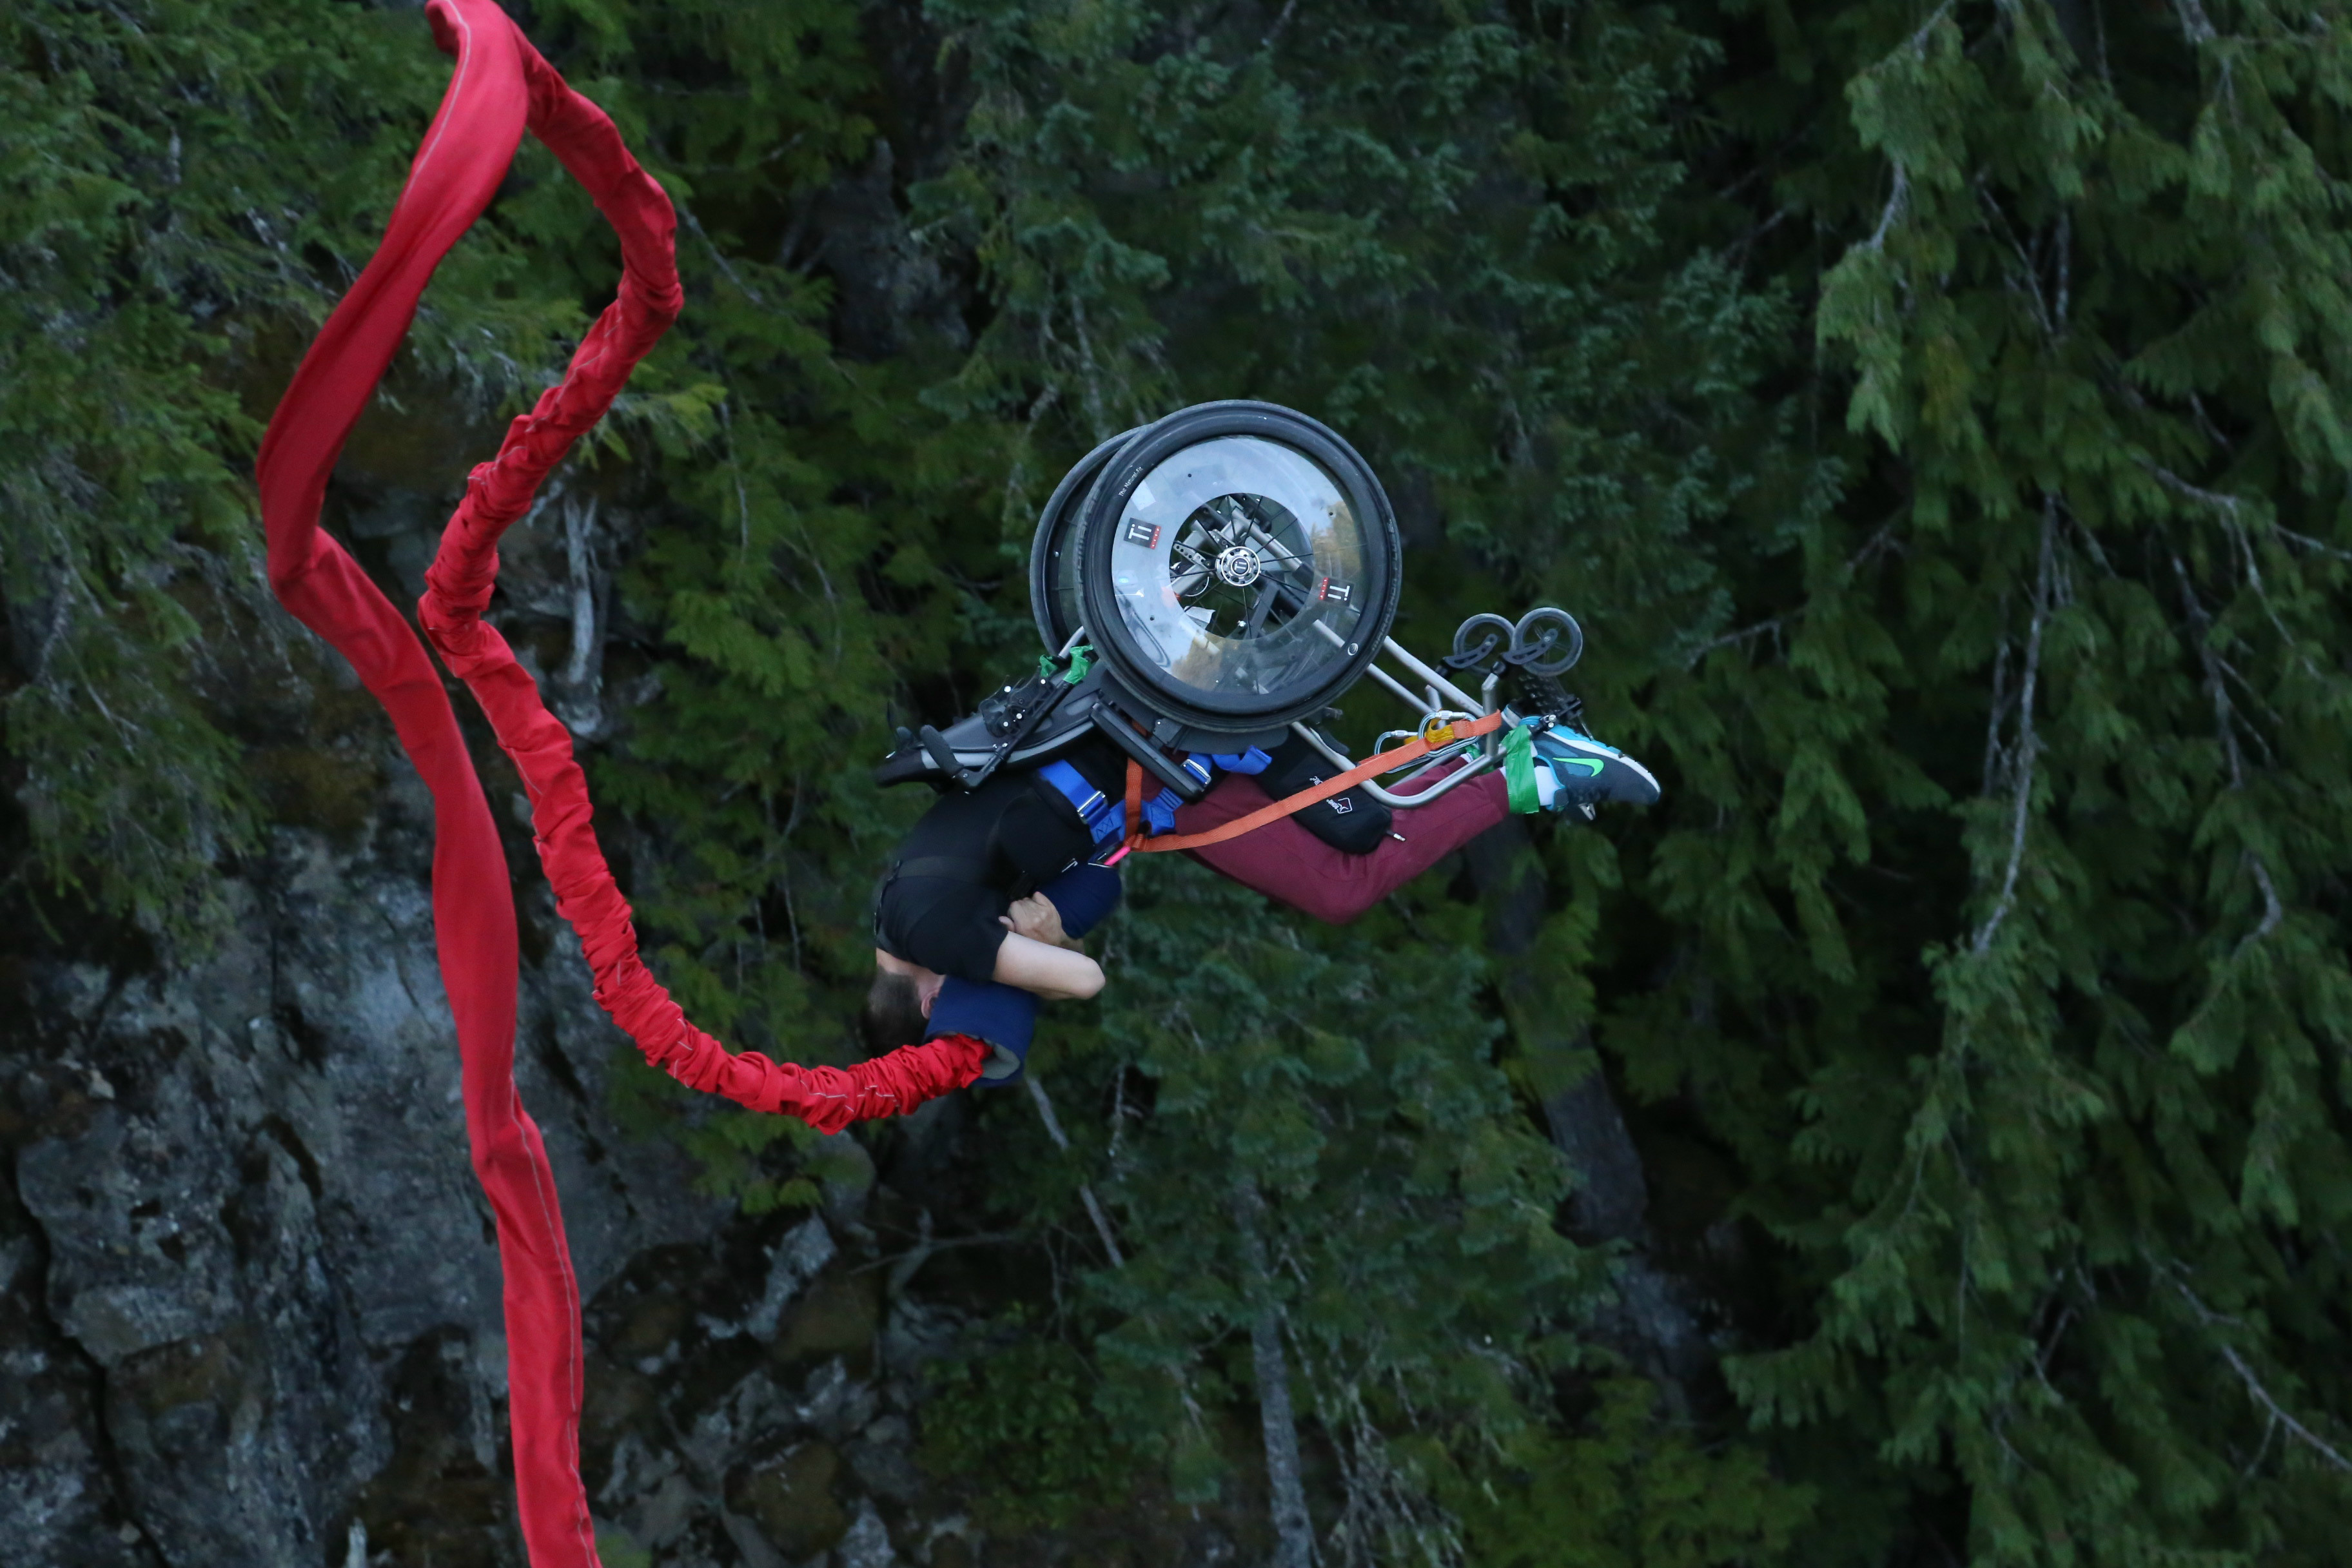 wheelchair jump vintage pink chair yoocan dylan lamoureux bungee jumping in a